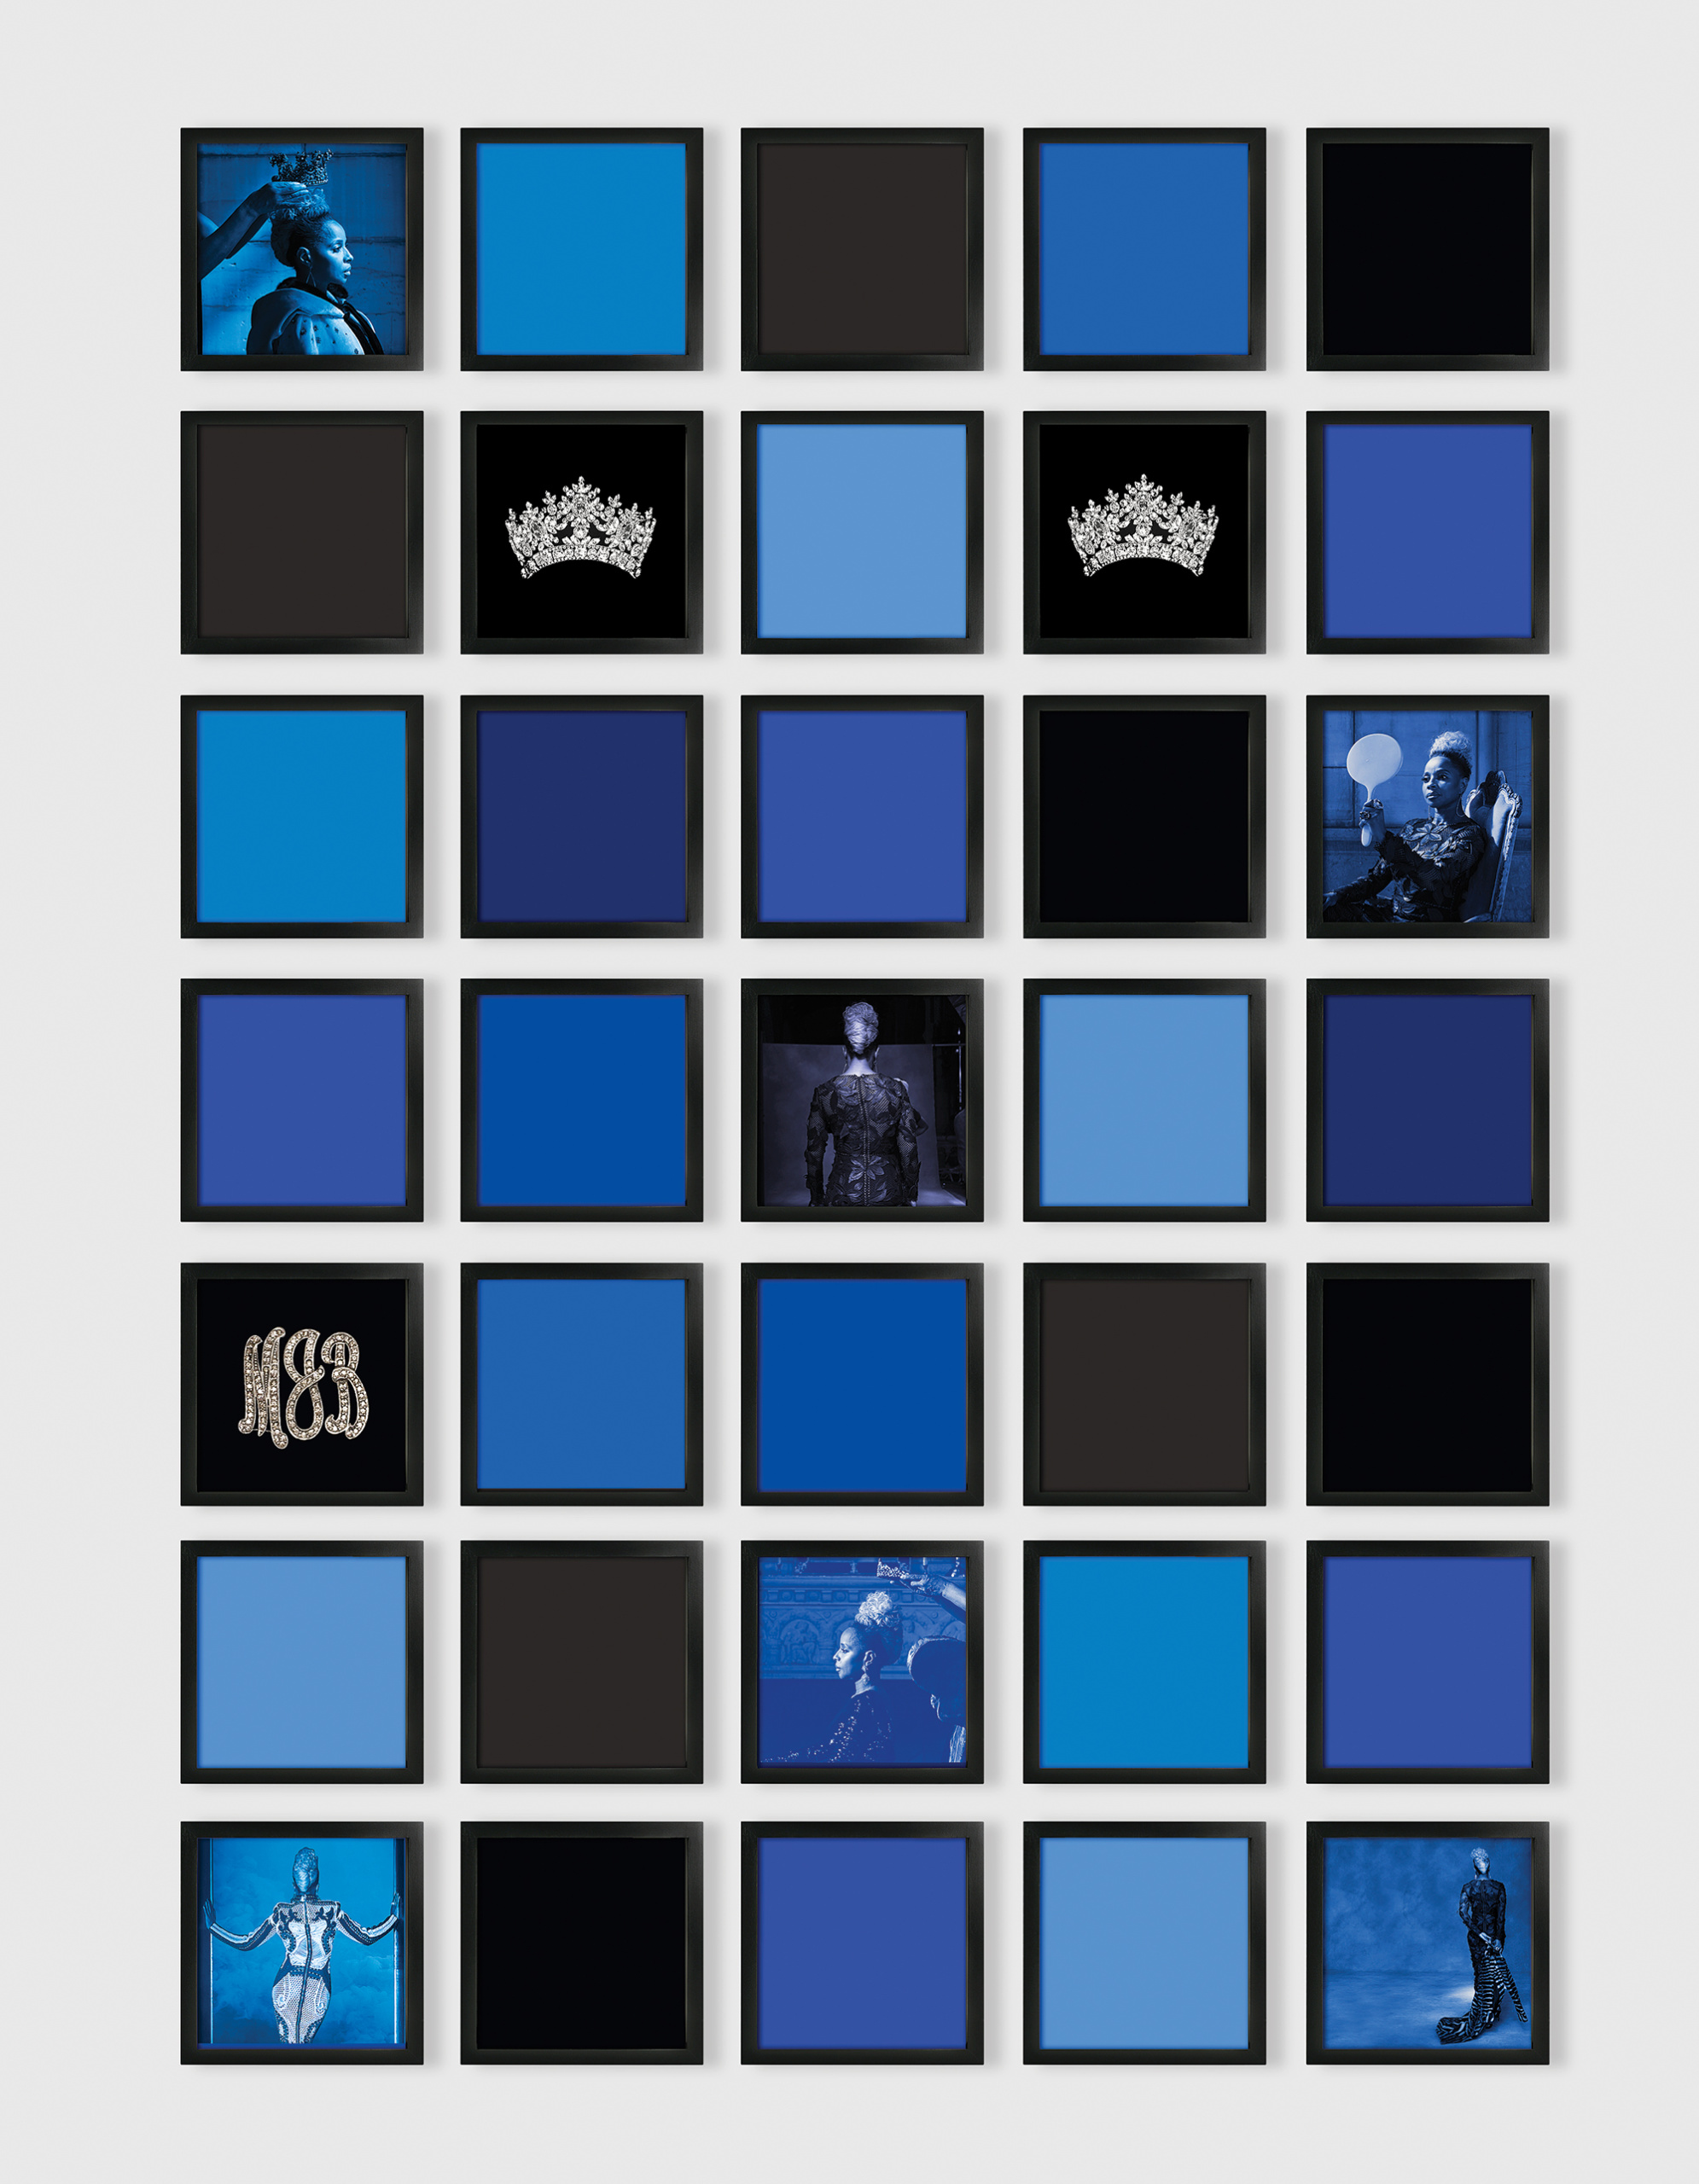 Carrie Mae Weems, The Blues (A.K.A. MJB), 2017. Courtesy the artist and Jack Shainman Gallery, New York, NY